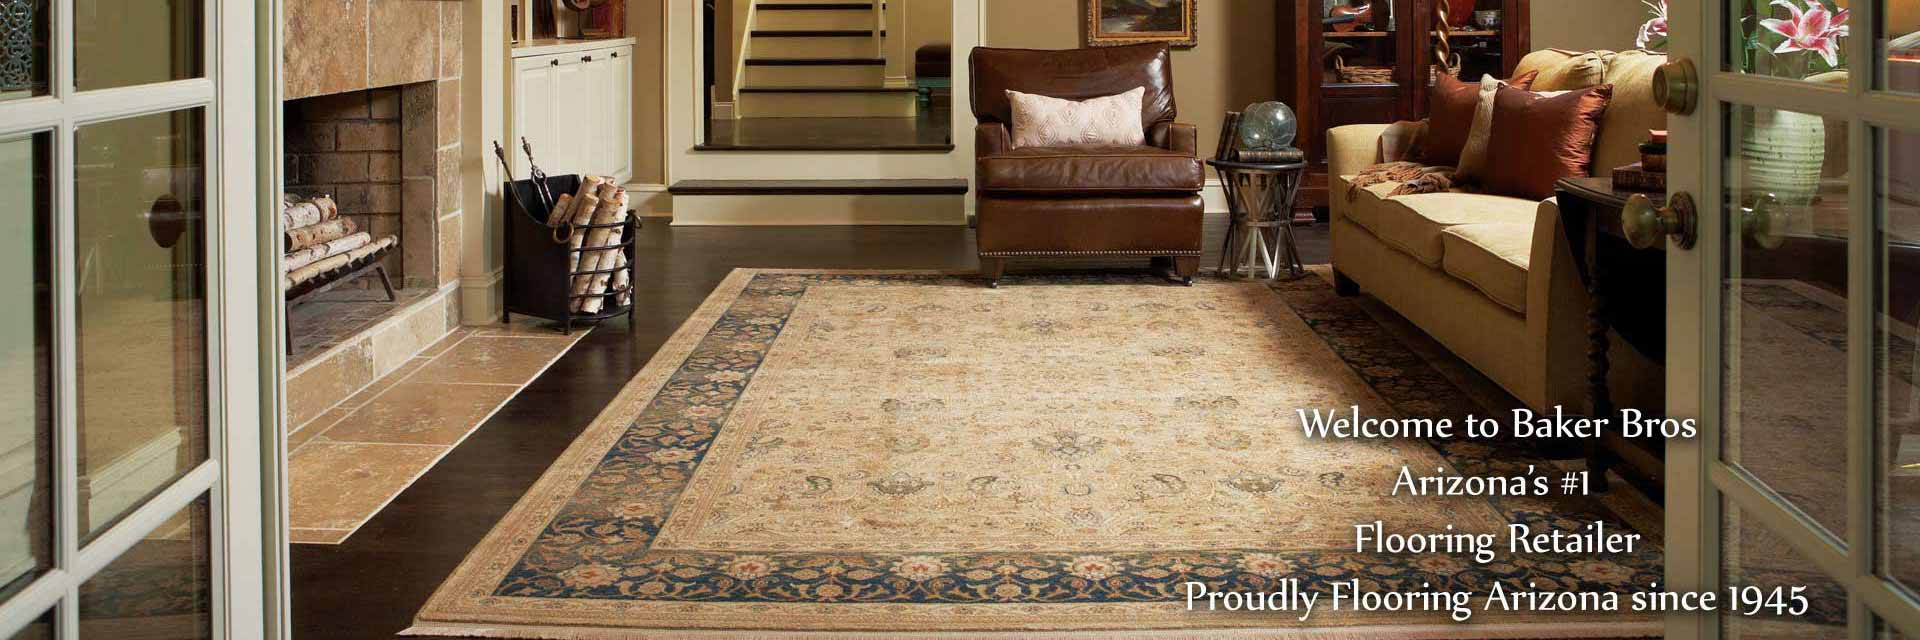 Expert advice we ll help you choose the best flooring for your home - Homeslide1